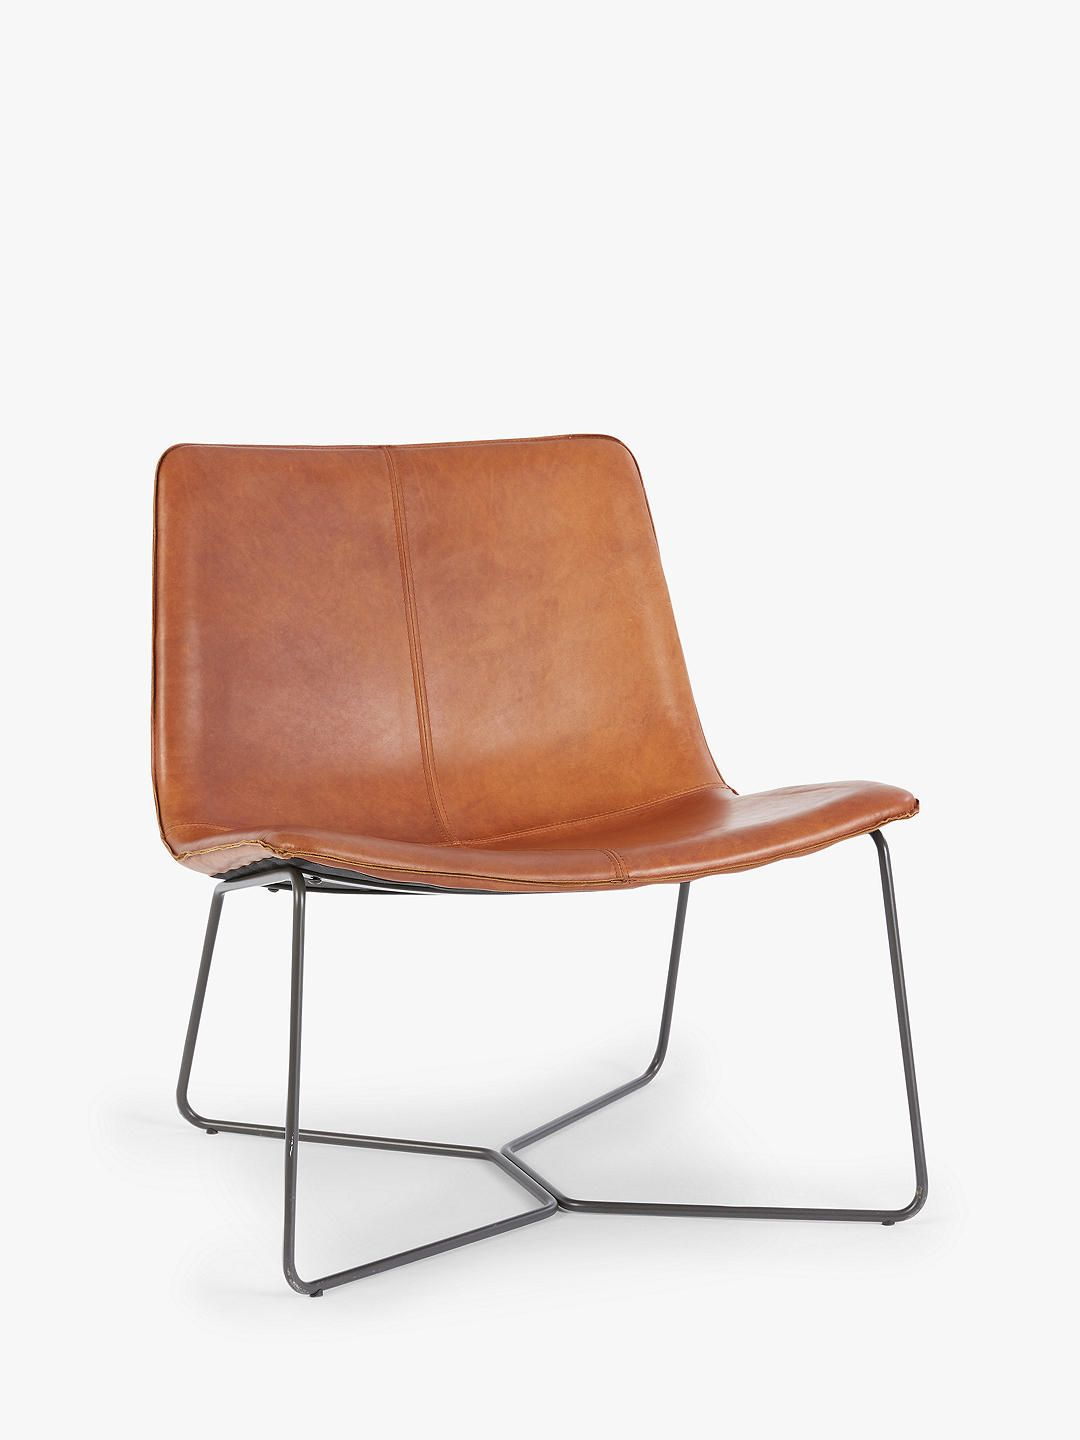 Groovy West Elm Slope Lounge Chair Saddle Leather In 2019 Dailytribune Chair Design For Home Dailytribuneorg